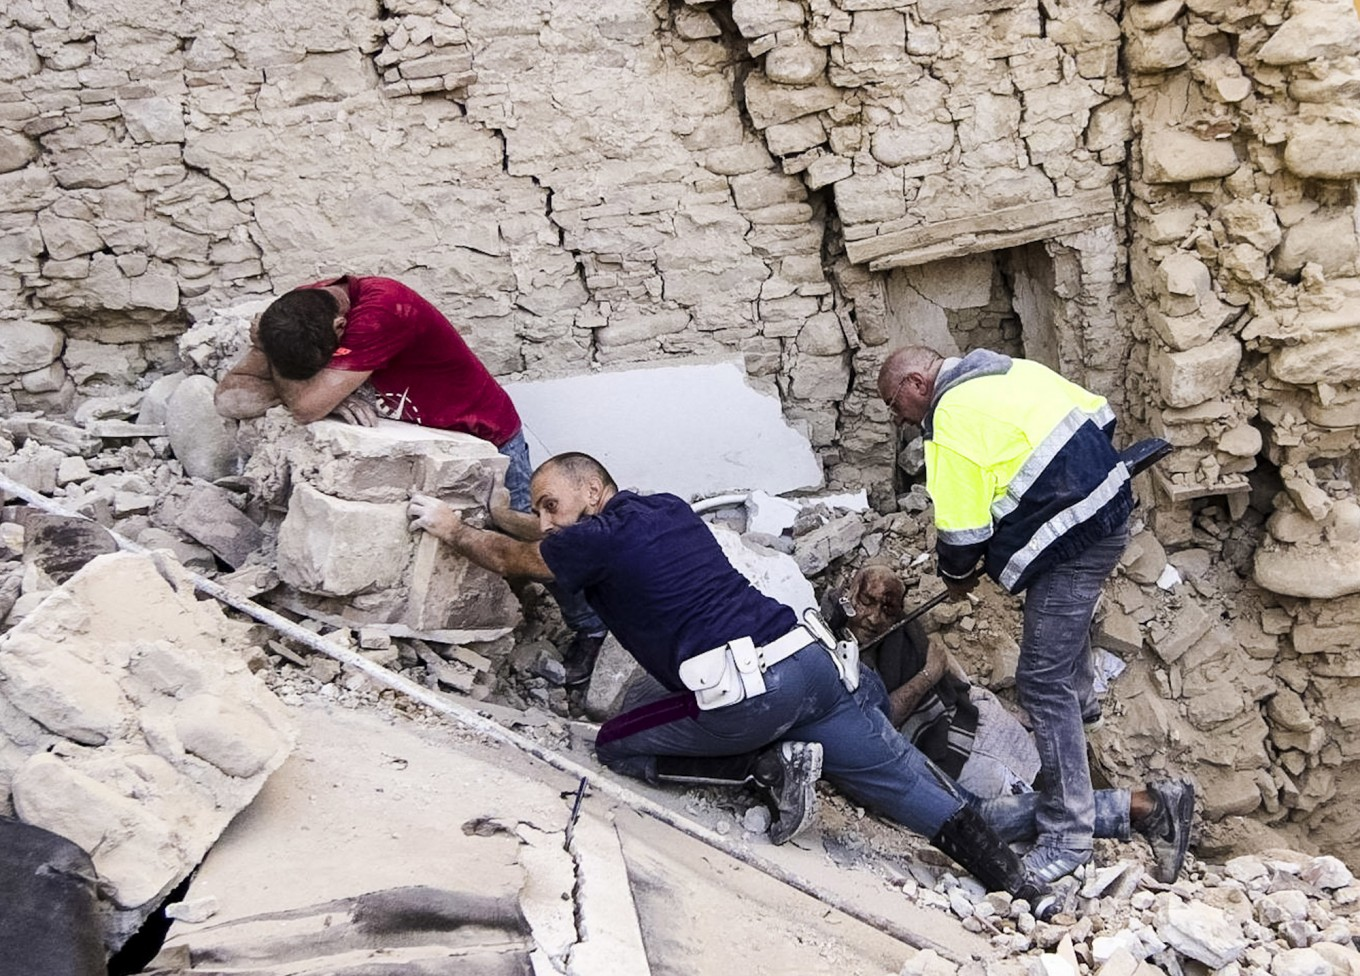 A man cries as another injured is helped in Amatrice, central Italy, where a 6.1 earthquake struck just after 3:30 a.m., Wednesday, Aug. 24, 2016. The quake was felt across a broad section of central Italy, including the capital Rome where people in homes in the historic center felt a long swaying followed by aftershocks. AP Massimo Percossi/ANSA via AP